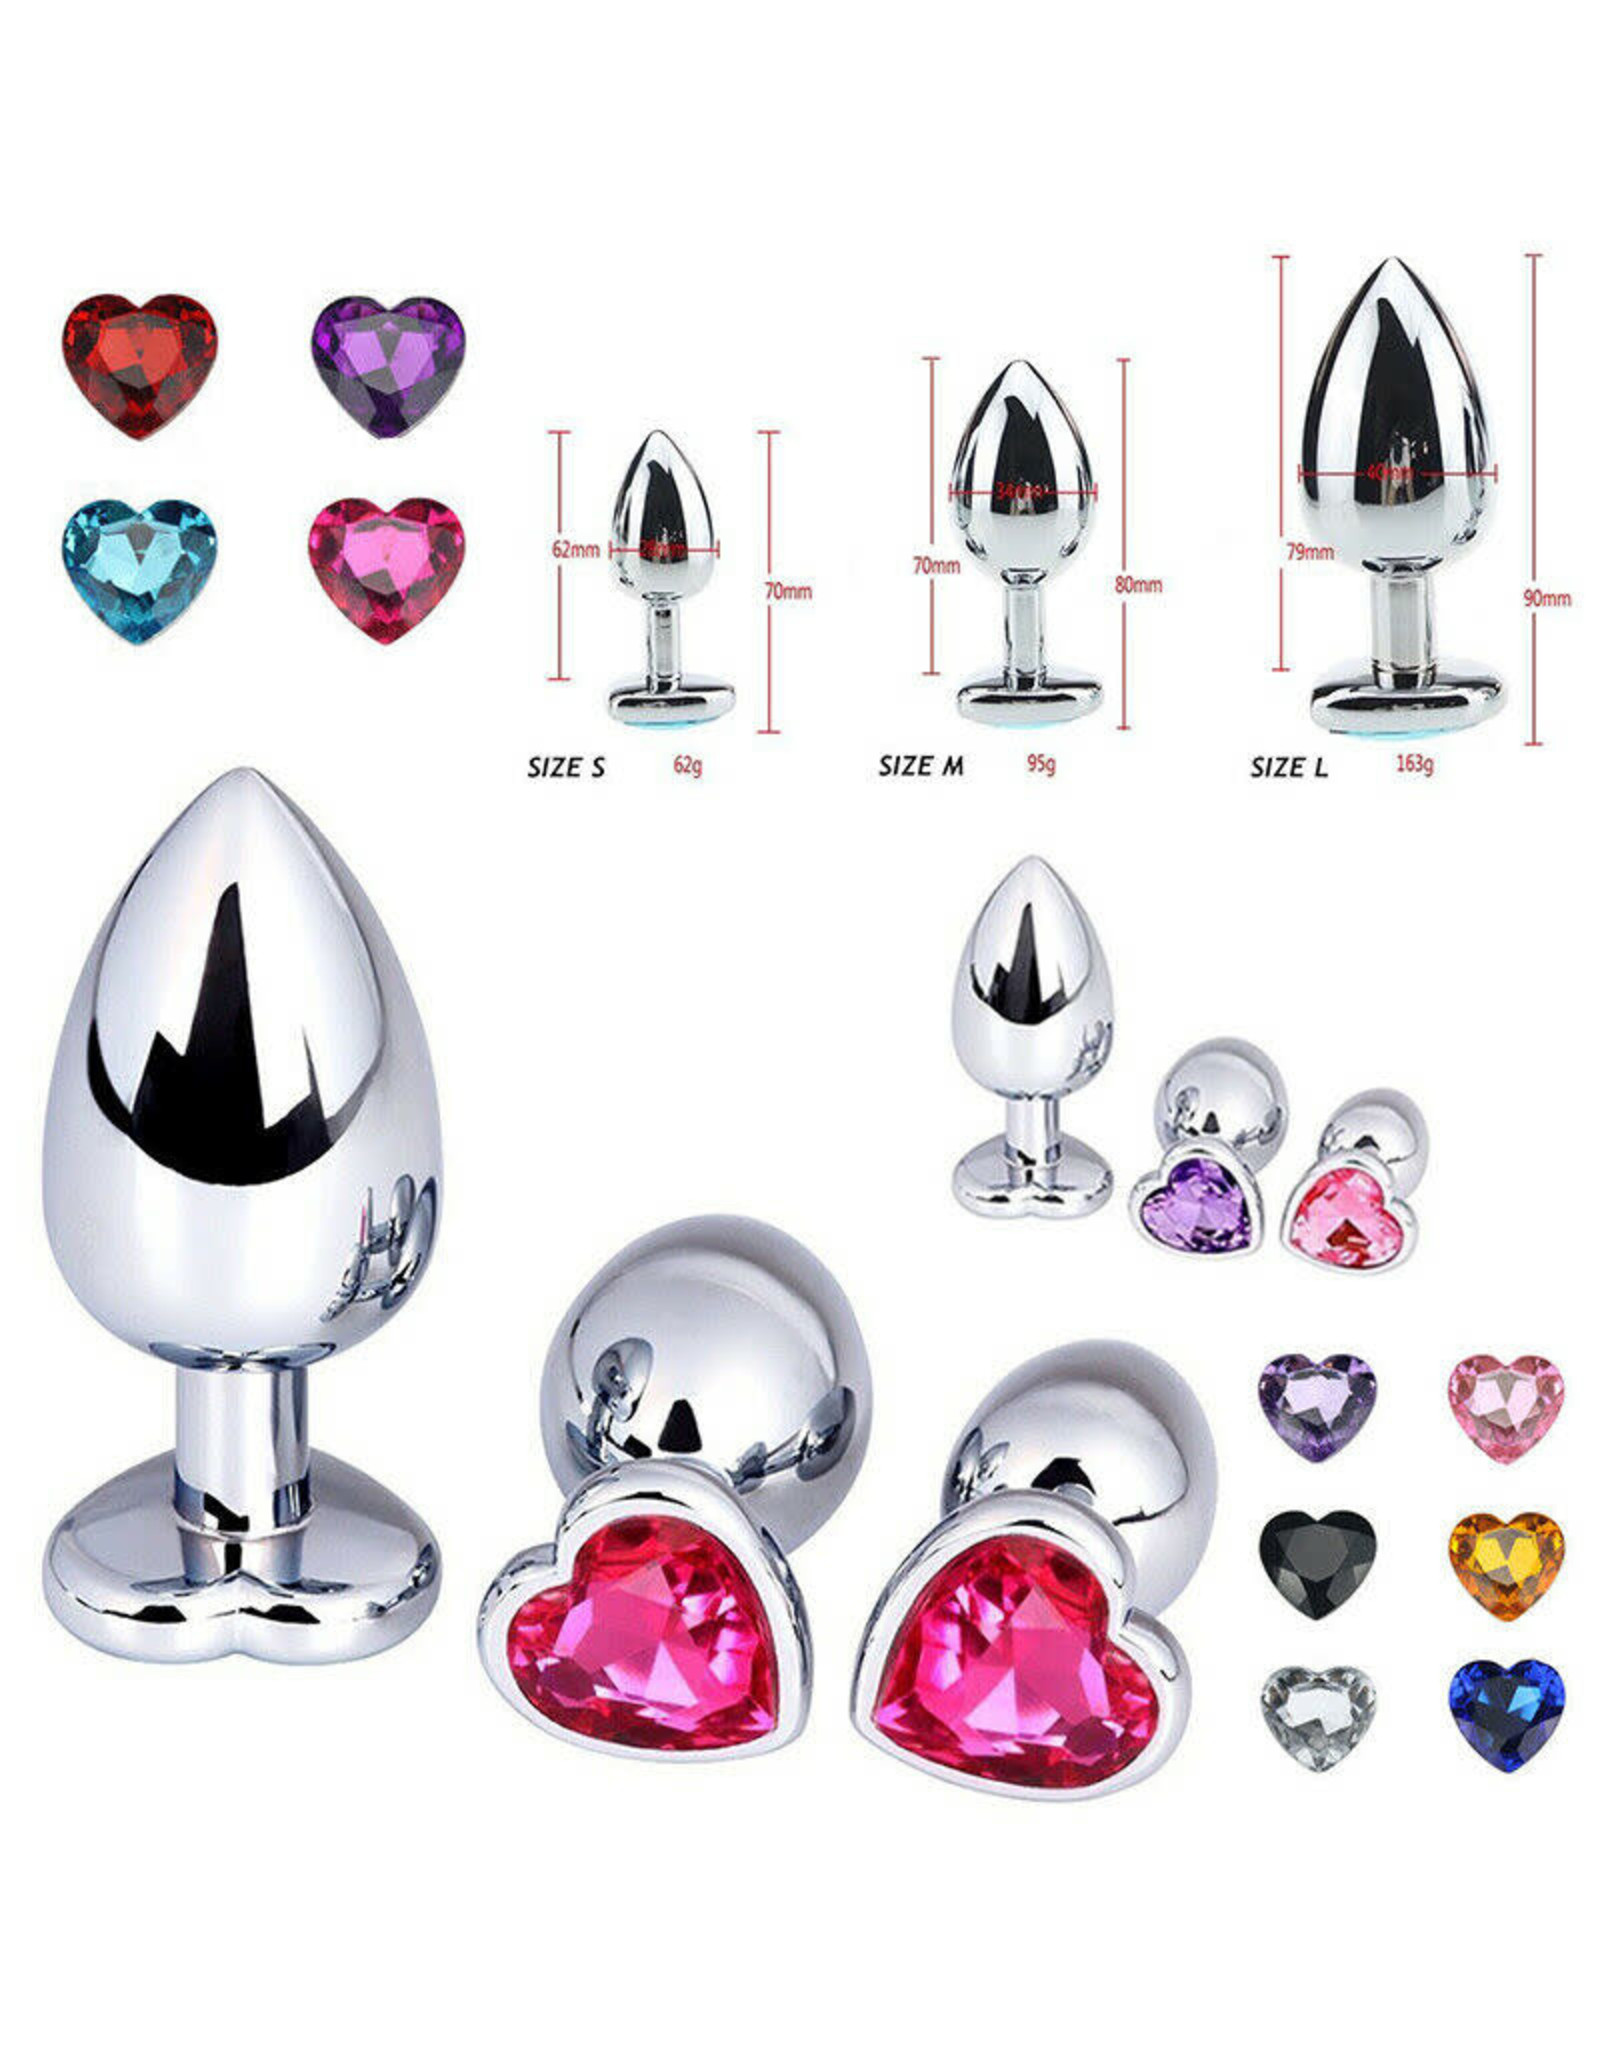 STAINLESS STEEL HEART BUTT PLUG - LARGE